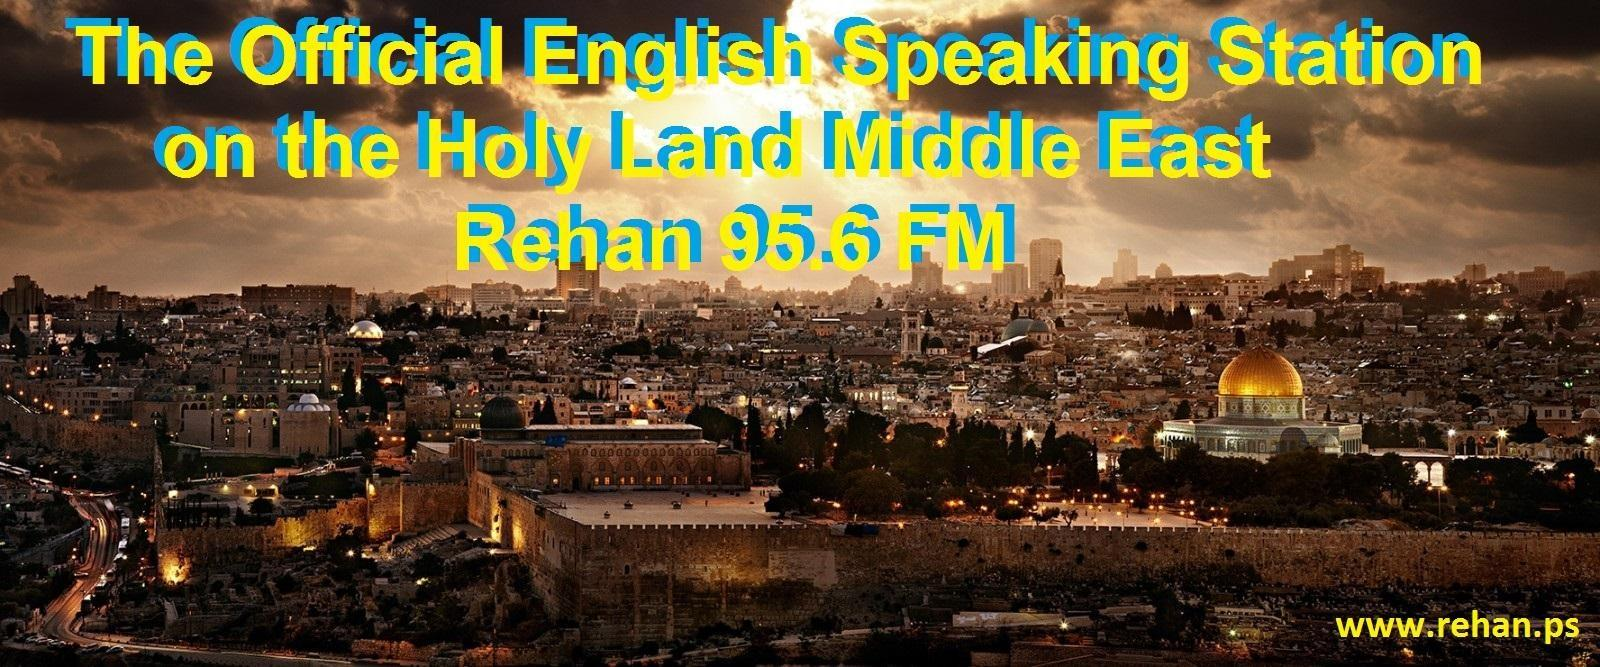 The Official English speaking station on the Holy Land Middle East Rehan FM